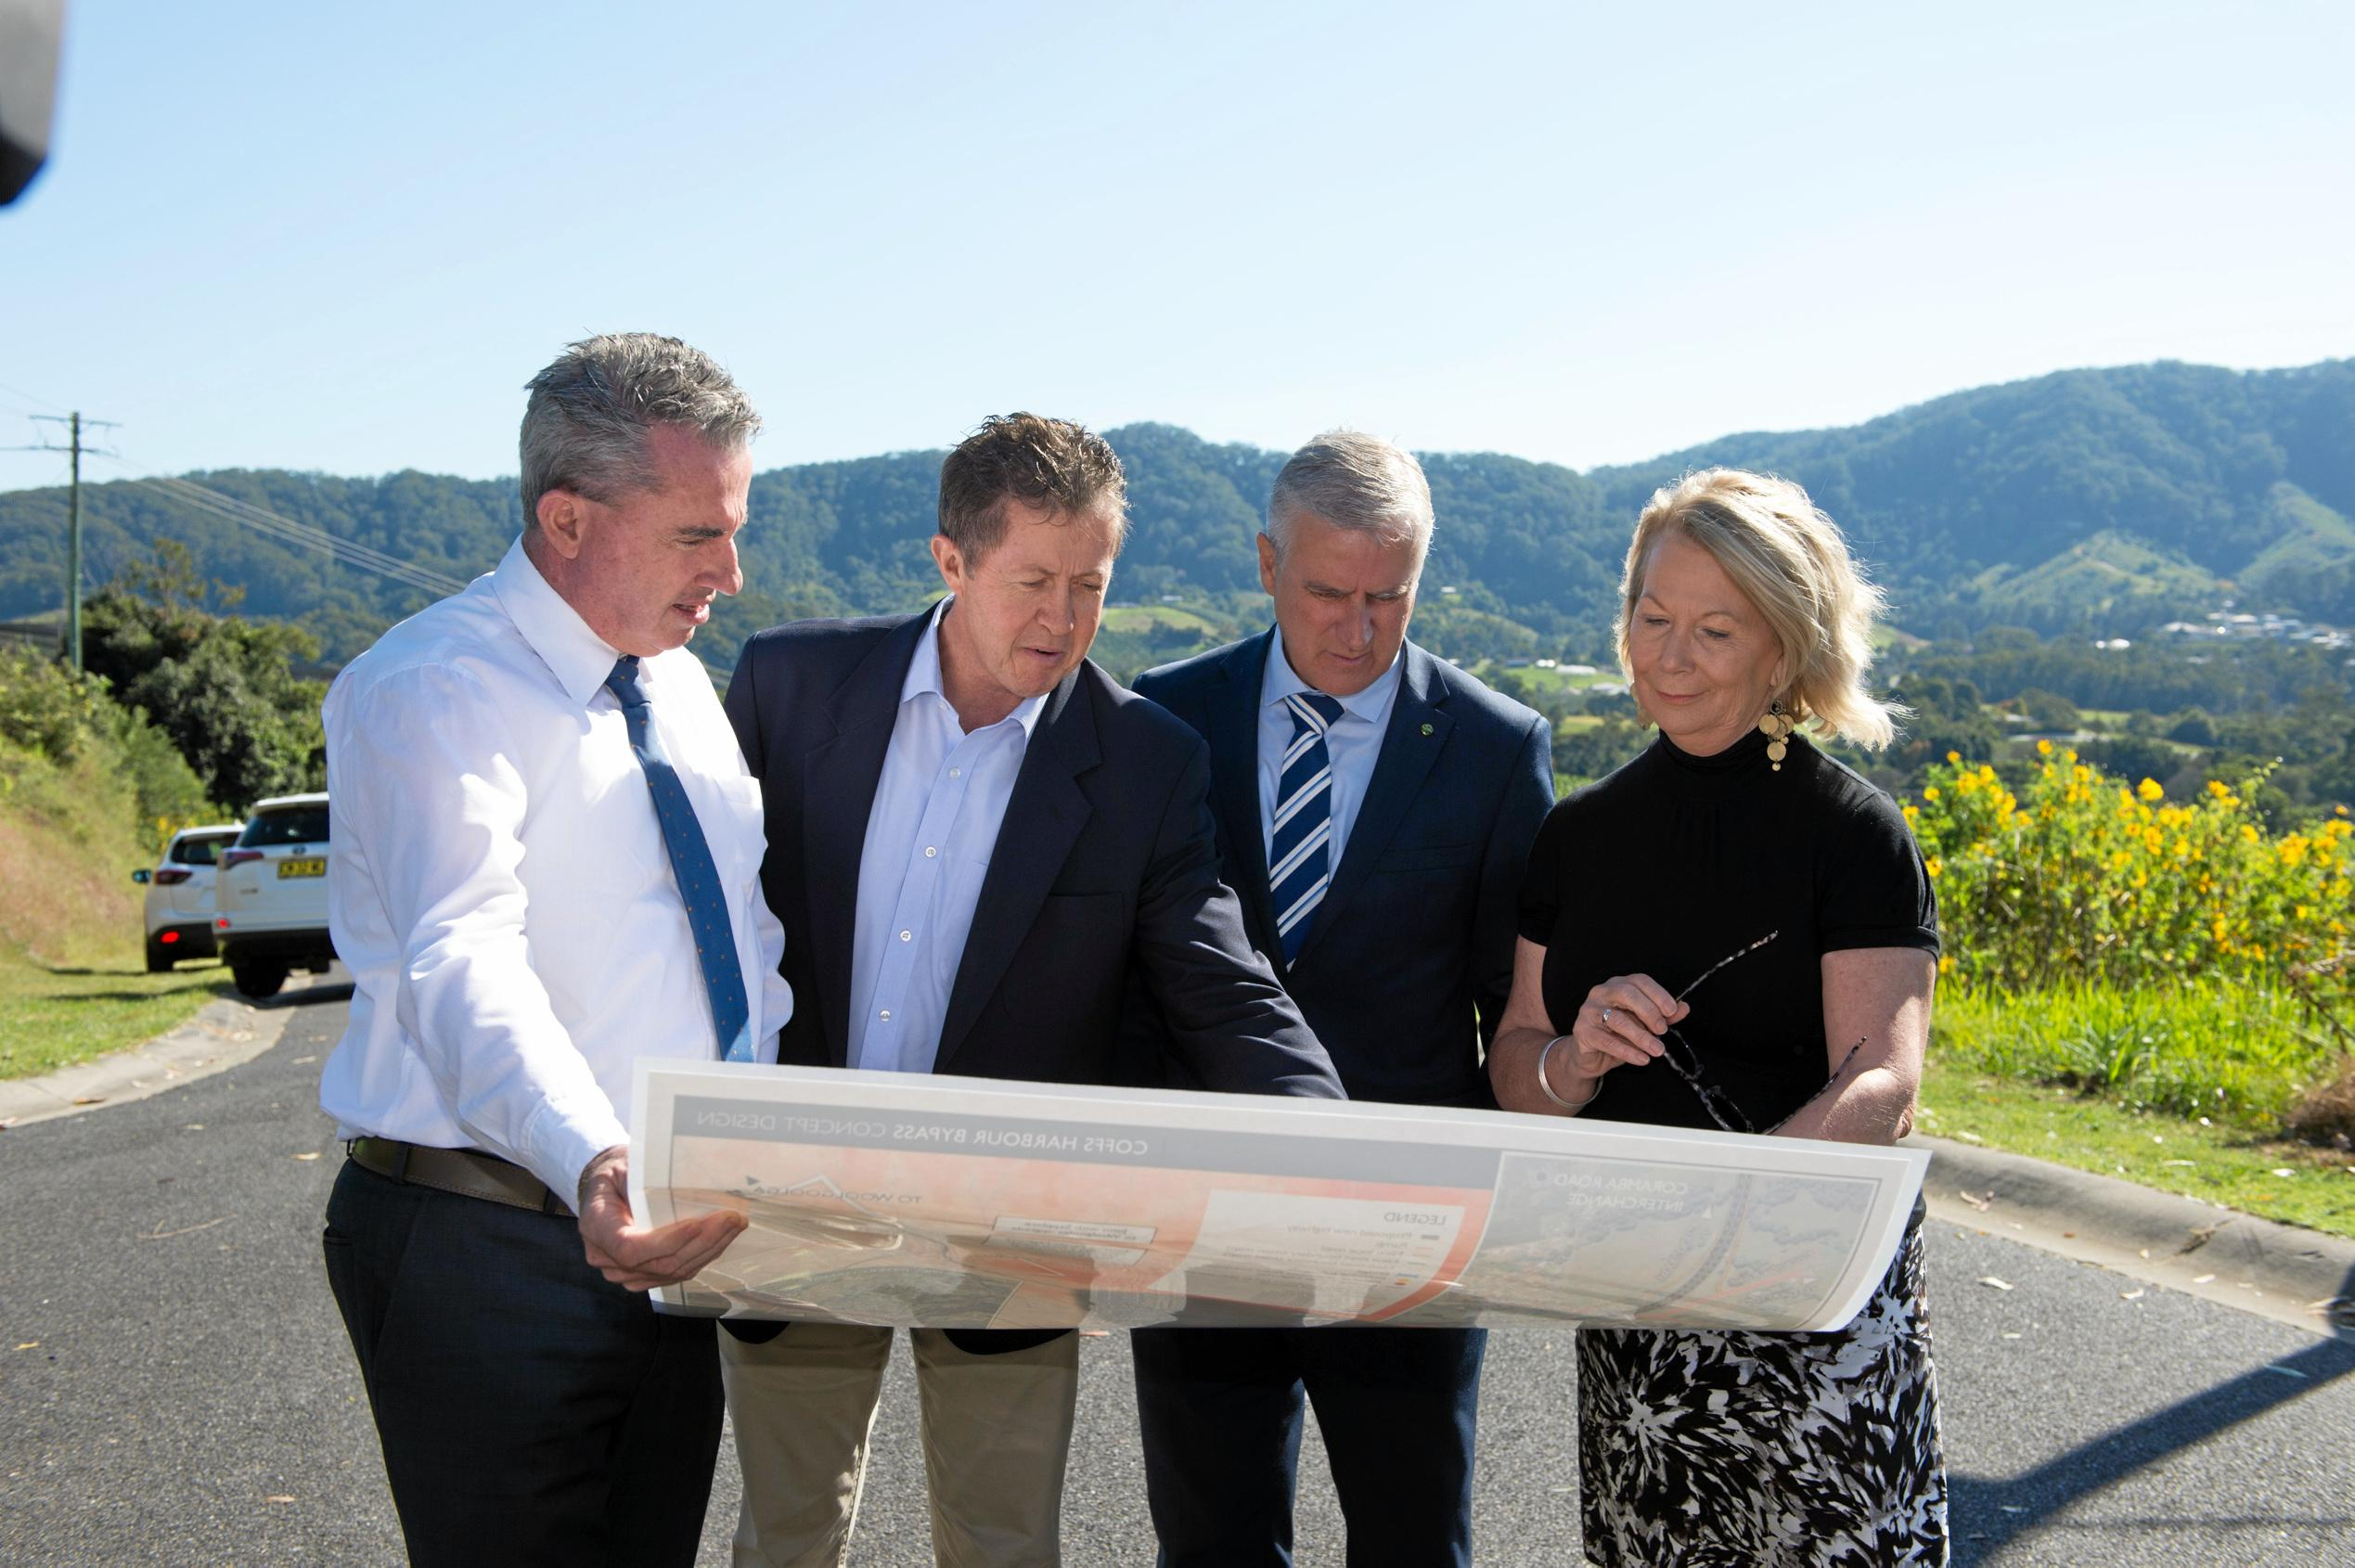 INSPECTING THE ROUTE: Member for Page Kevin Hogan, Cowper MP Luke Hartsuyker, Deputy Prime Minister Michael McCormack and Coffs Harbour Mayor Cr Denise Knight look over the map of the proposed route of the Coffs Harbour bypass.